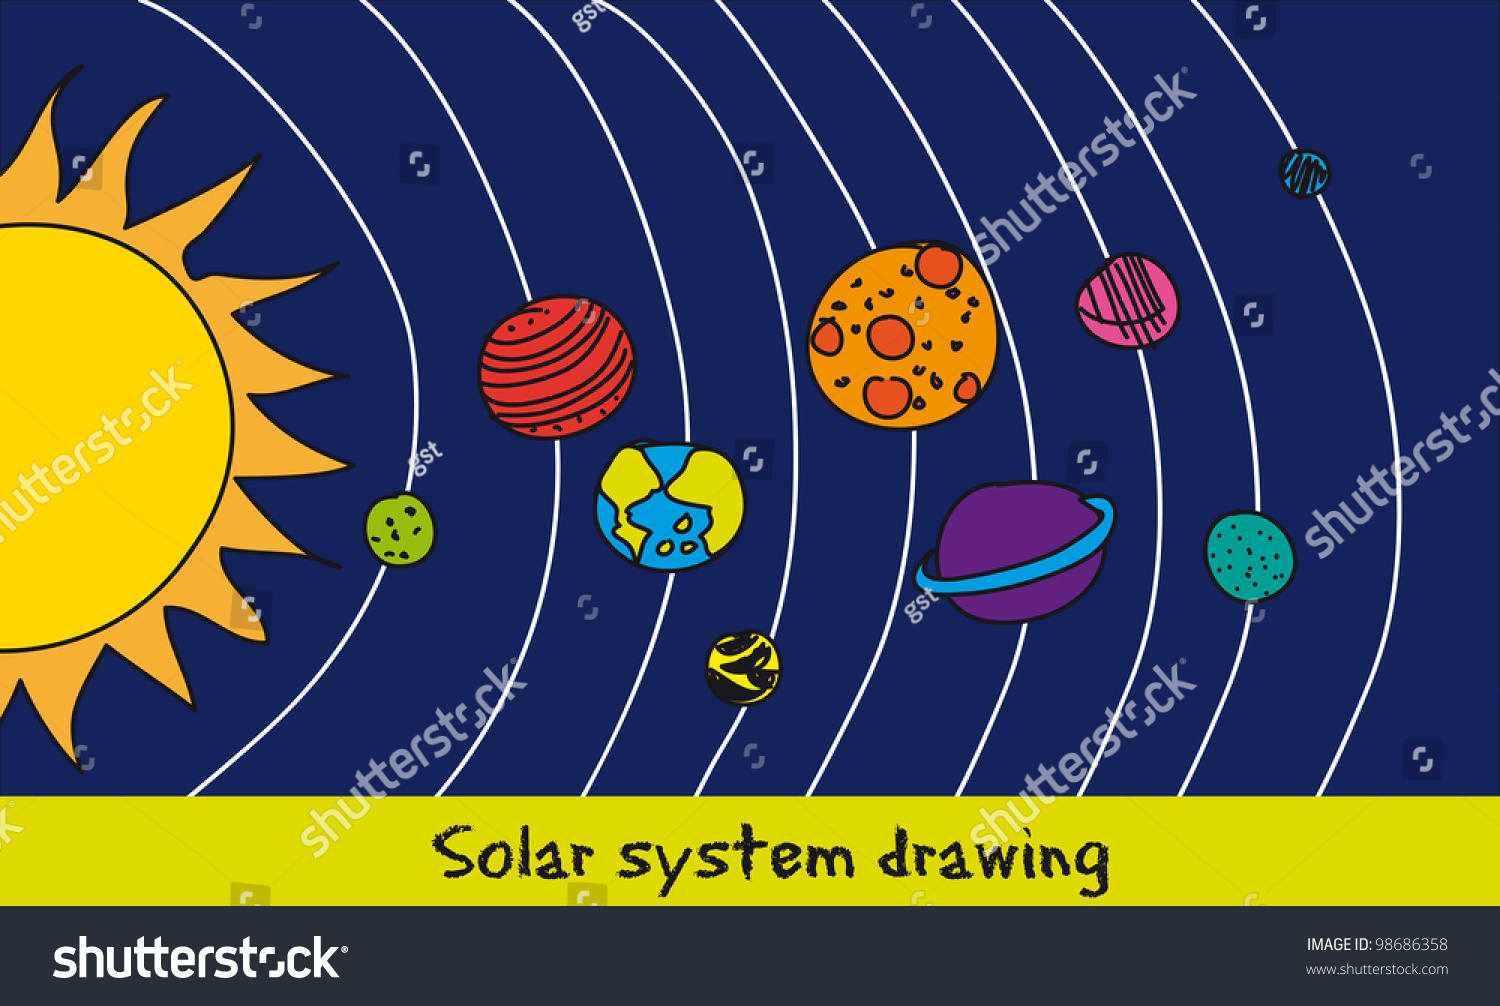 drawing of the solar system in the sun - photo #12